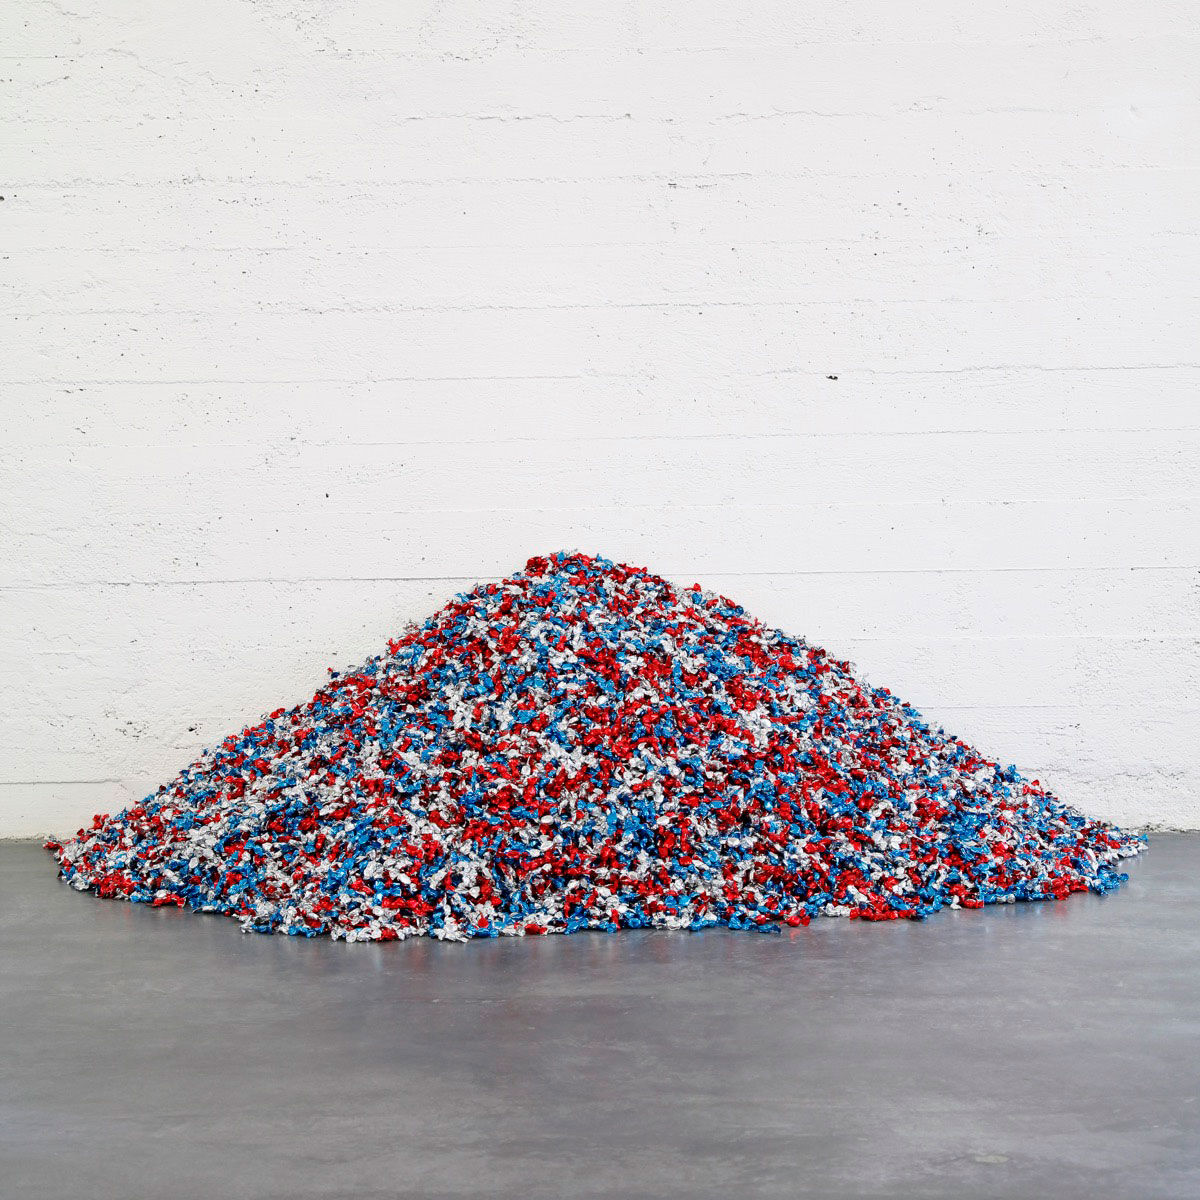 "Felix Gonzalez-Torres, ""Untitled"" (USA Today), 1990. Candies individually wrapped in red, silver, and blue cellophane, endless supply. Overall dimensions vary with installation. Ideal weight: 300 lbs. Installation view: Felix Gonzalez-Torres: Specific Objects without Specific Form. Wiels Contemporary Art Centre, Brussels, Belgium. 16 Jan. –  28 Feb. 2010. Cur. Elena Filipovic; 5 Mar. –  2 May 2010. Cur. Danh Vo. © The Felix Gonzalez-Torres Foundation. Courtesy of Andrea Rosen Gallery, New York."